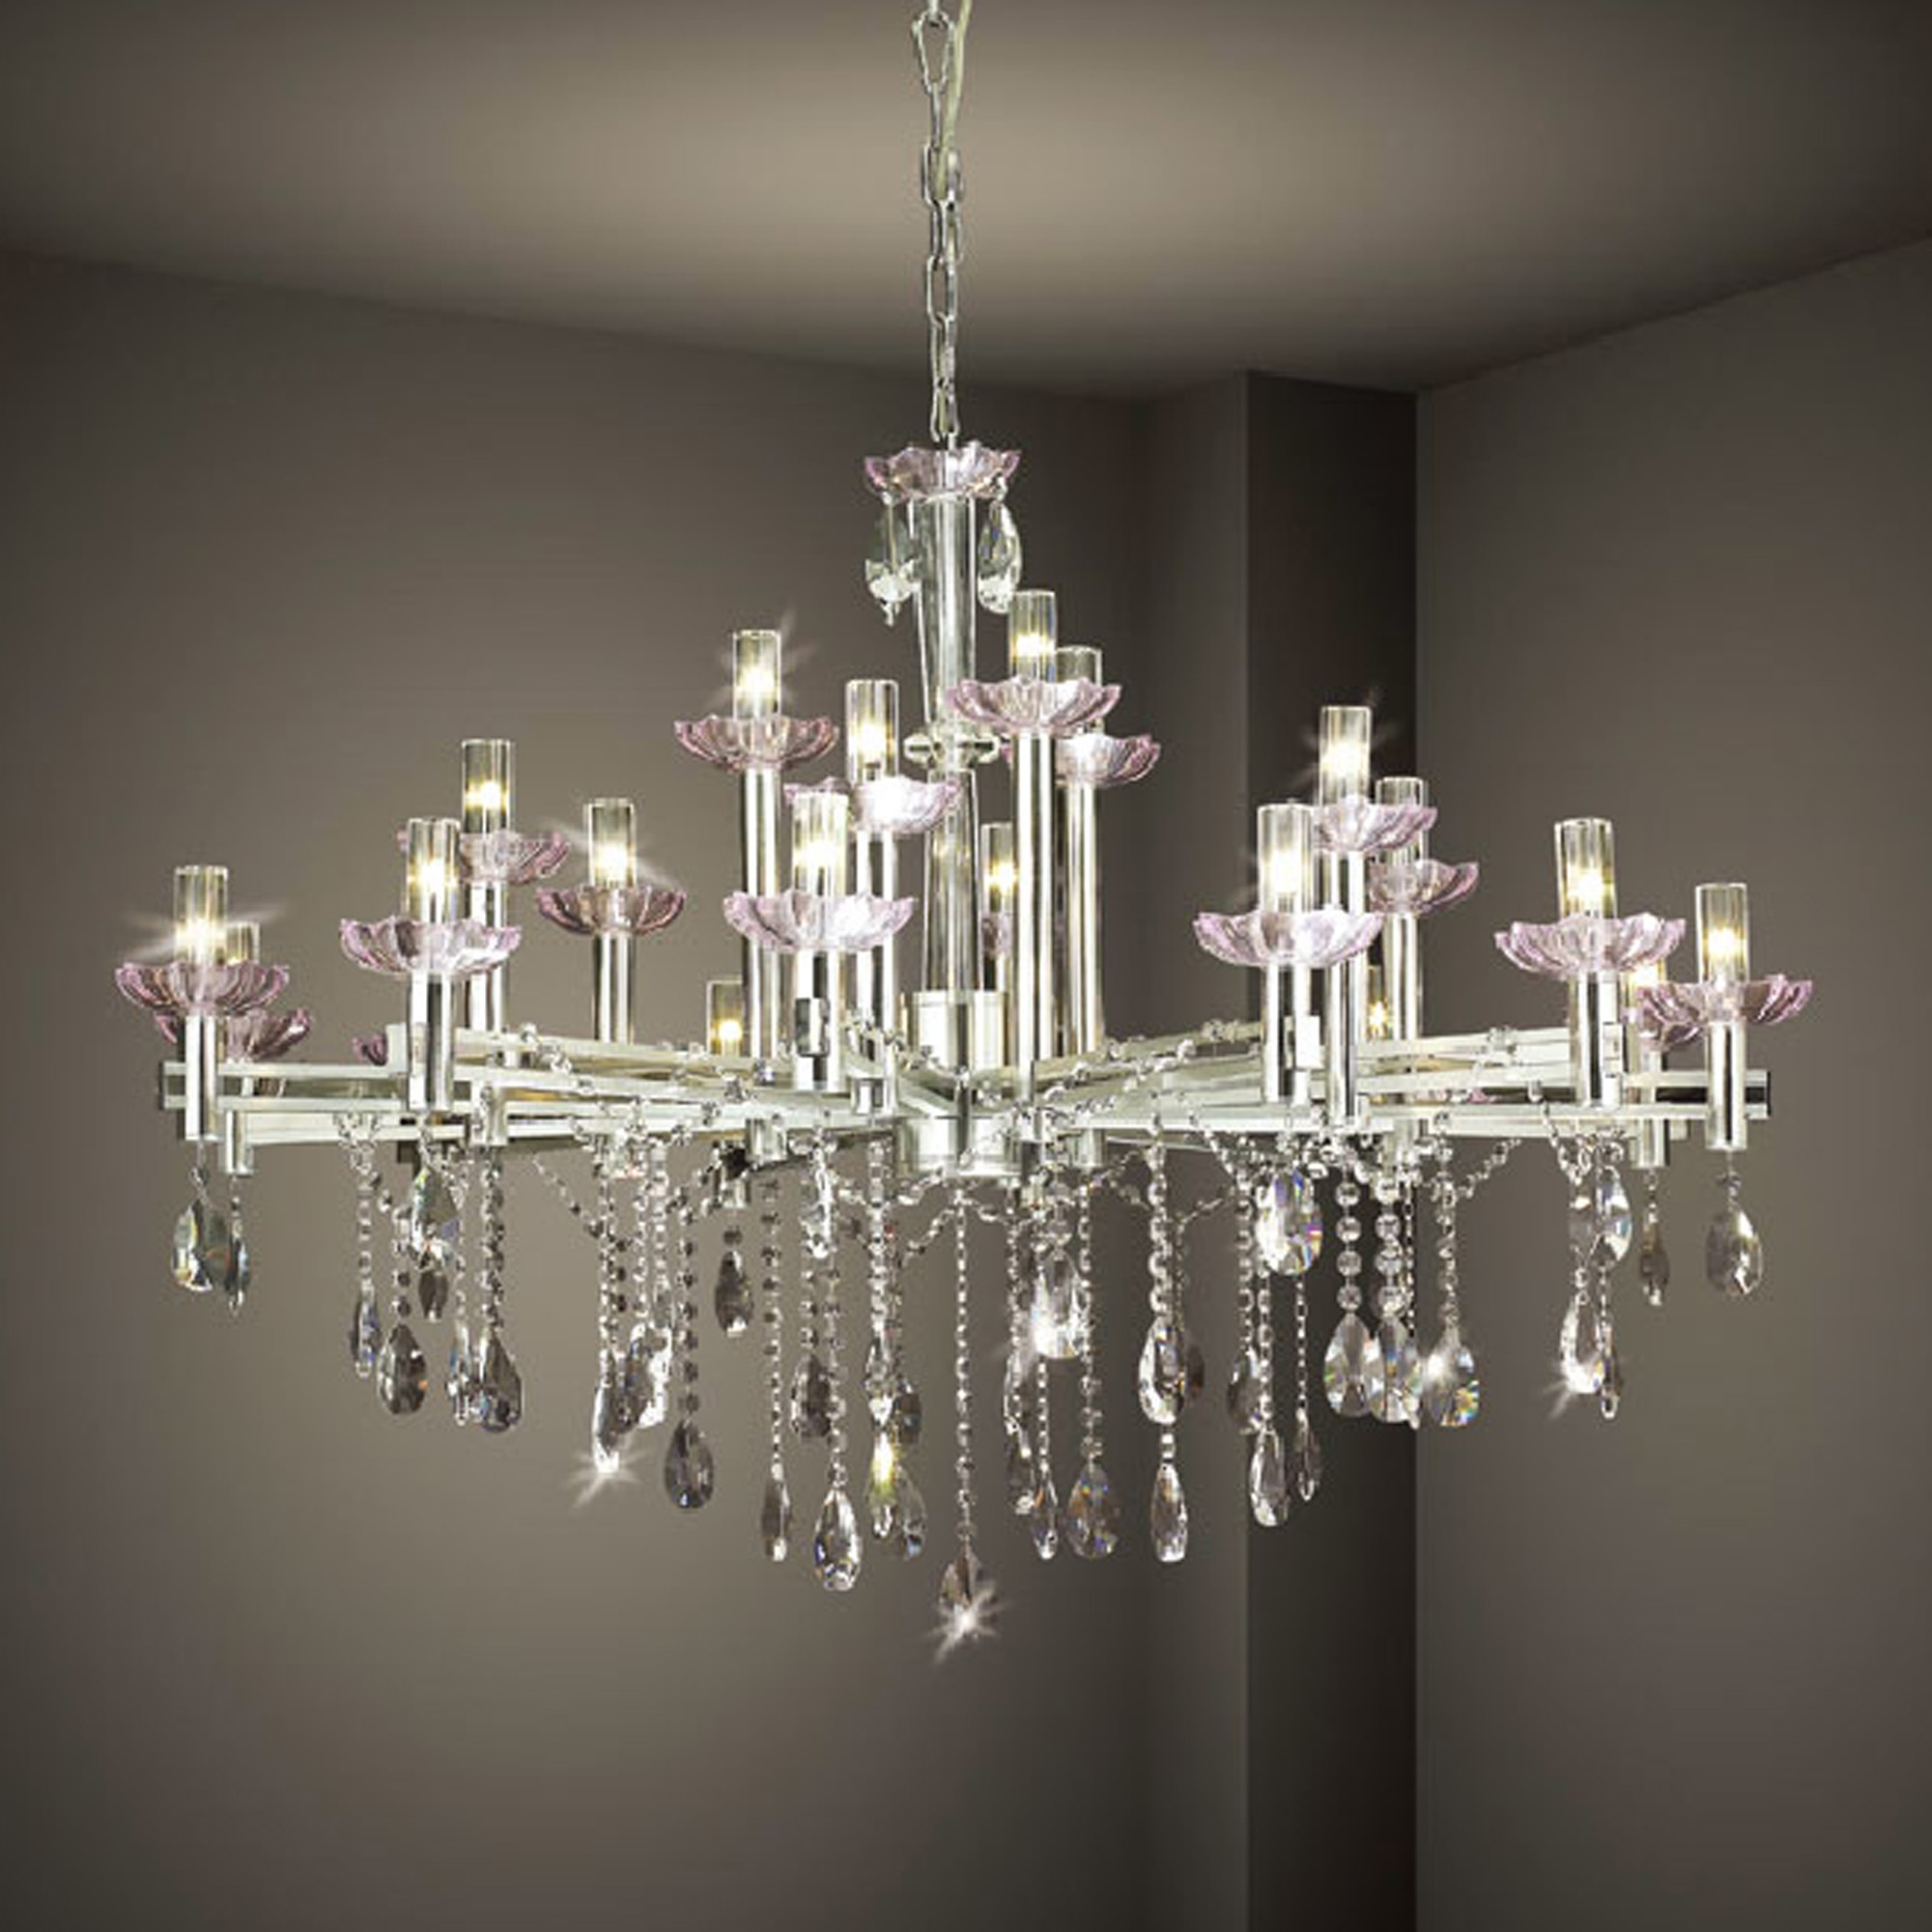 Chandelier Inspiring White Modern Chandelier Large Contemporary Throughout Modern White Chandelier (Image 6 of 15)